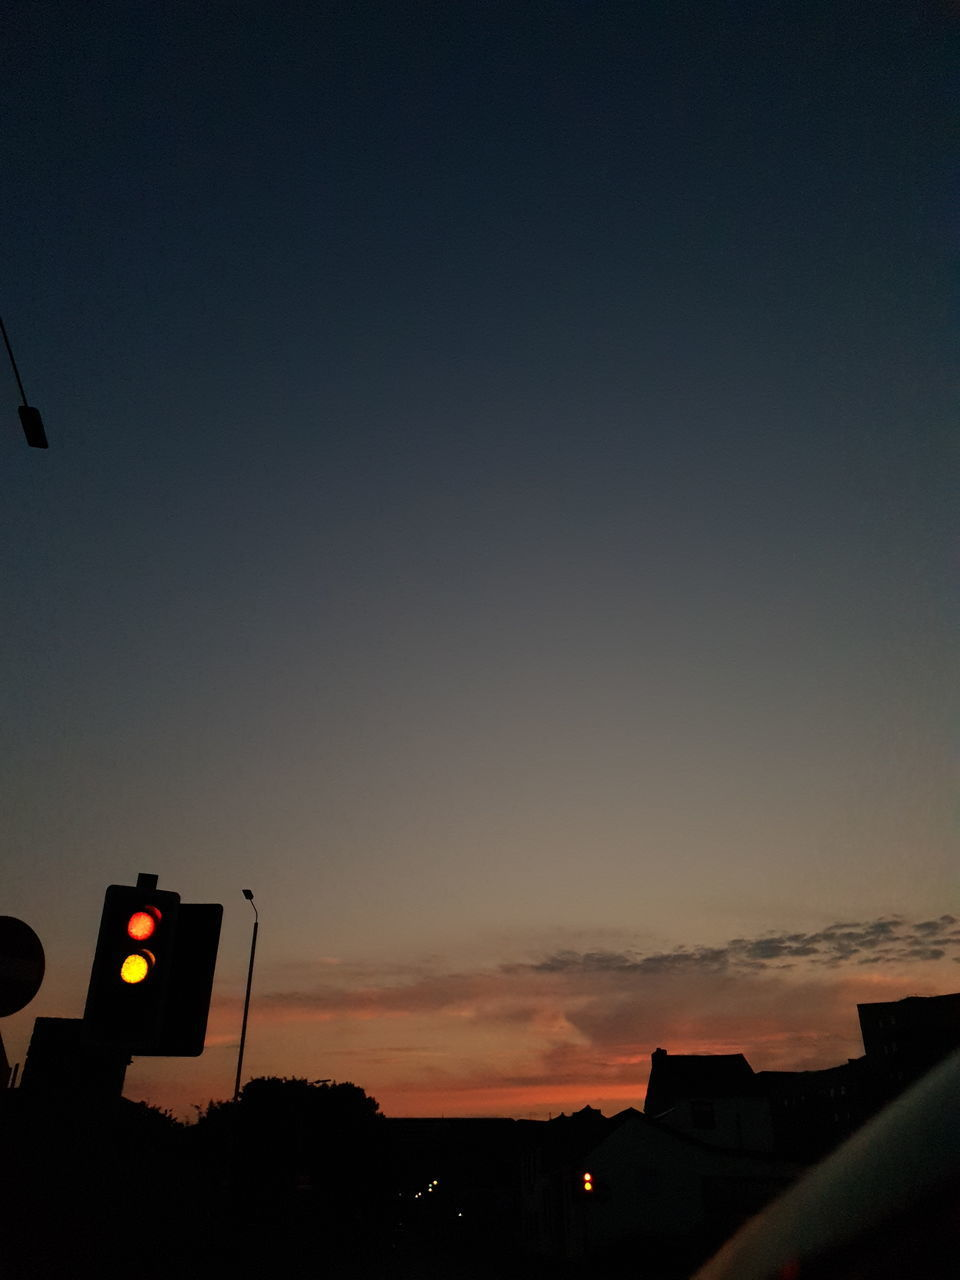 SILHOUETTE OF TRAFFIC AT SUNSET